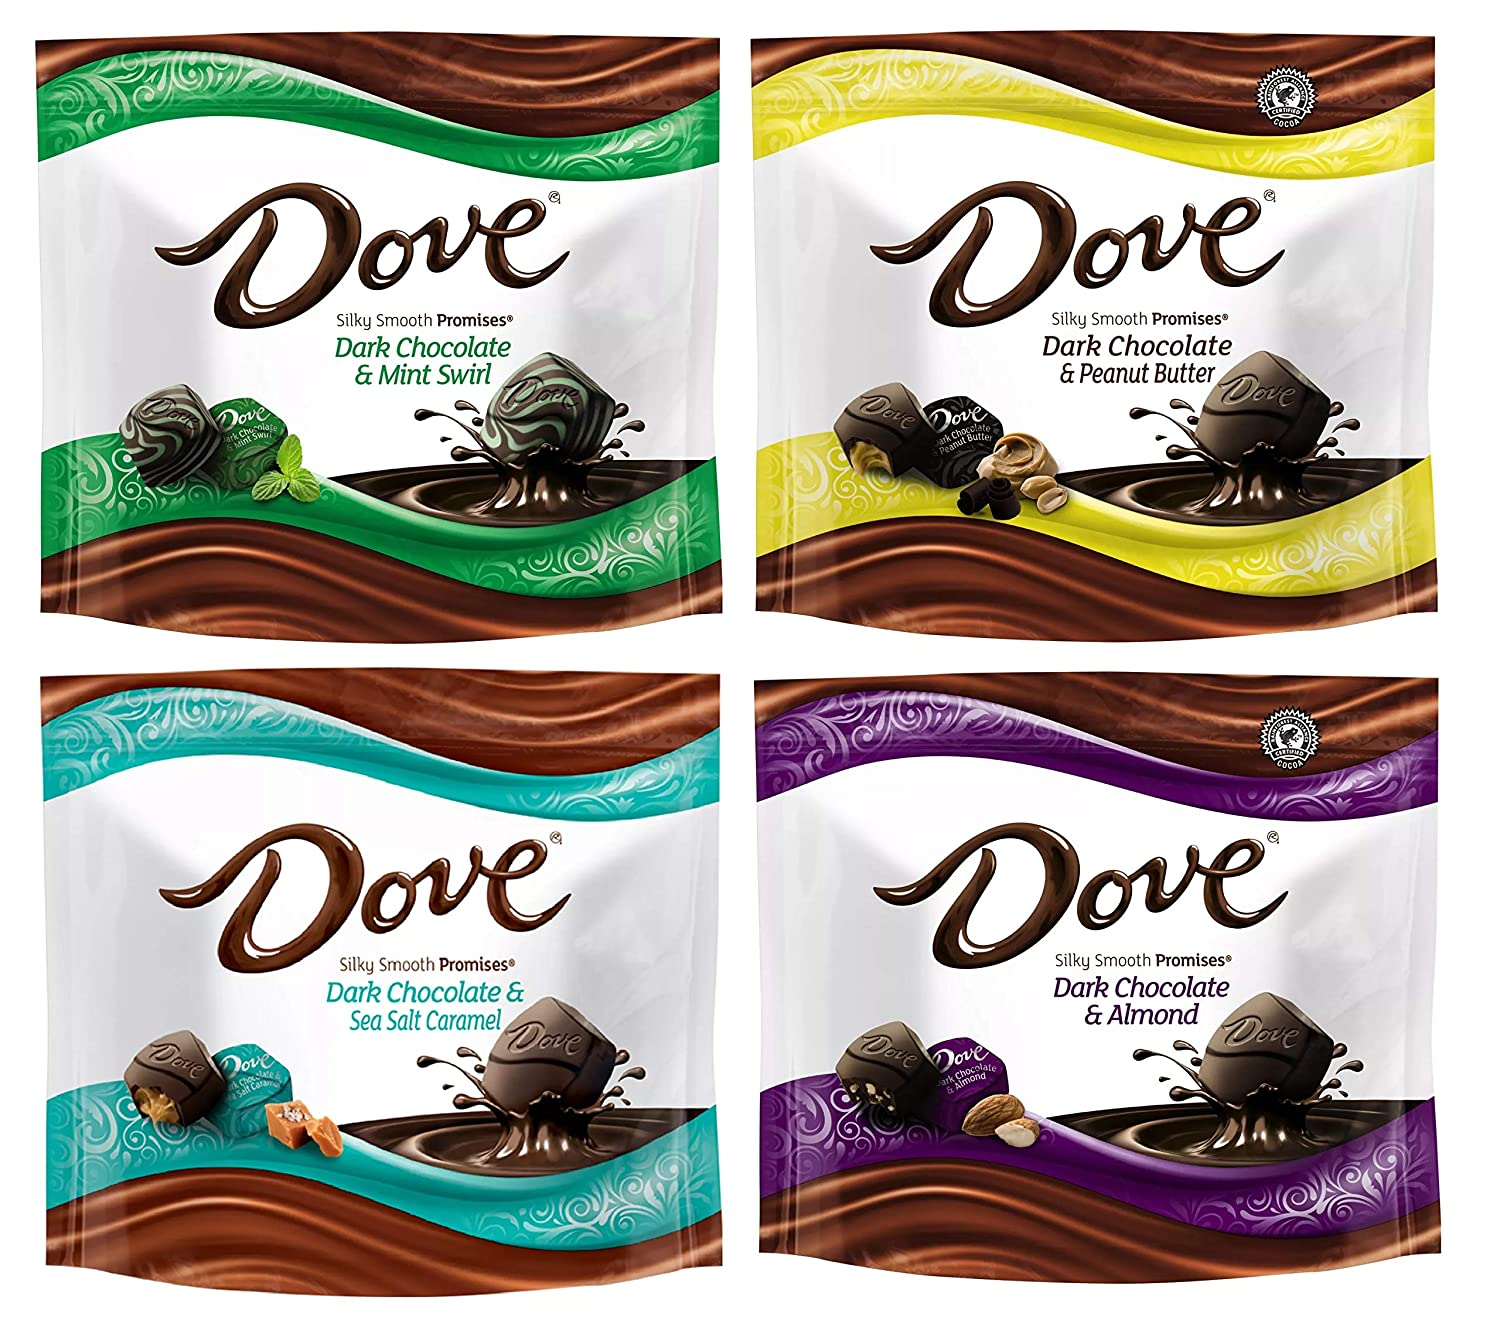 Dove Silky Smooth Promises 7.6 Oz Chocolate Candies - Ultimate Dark Variety 4 Pack (Mint Swirl, Peanut Butter, Sea Salt Caramel, Almond)